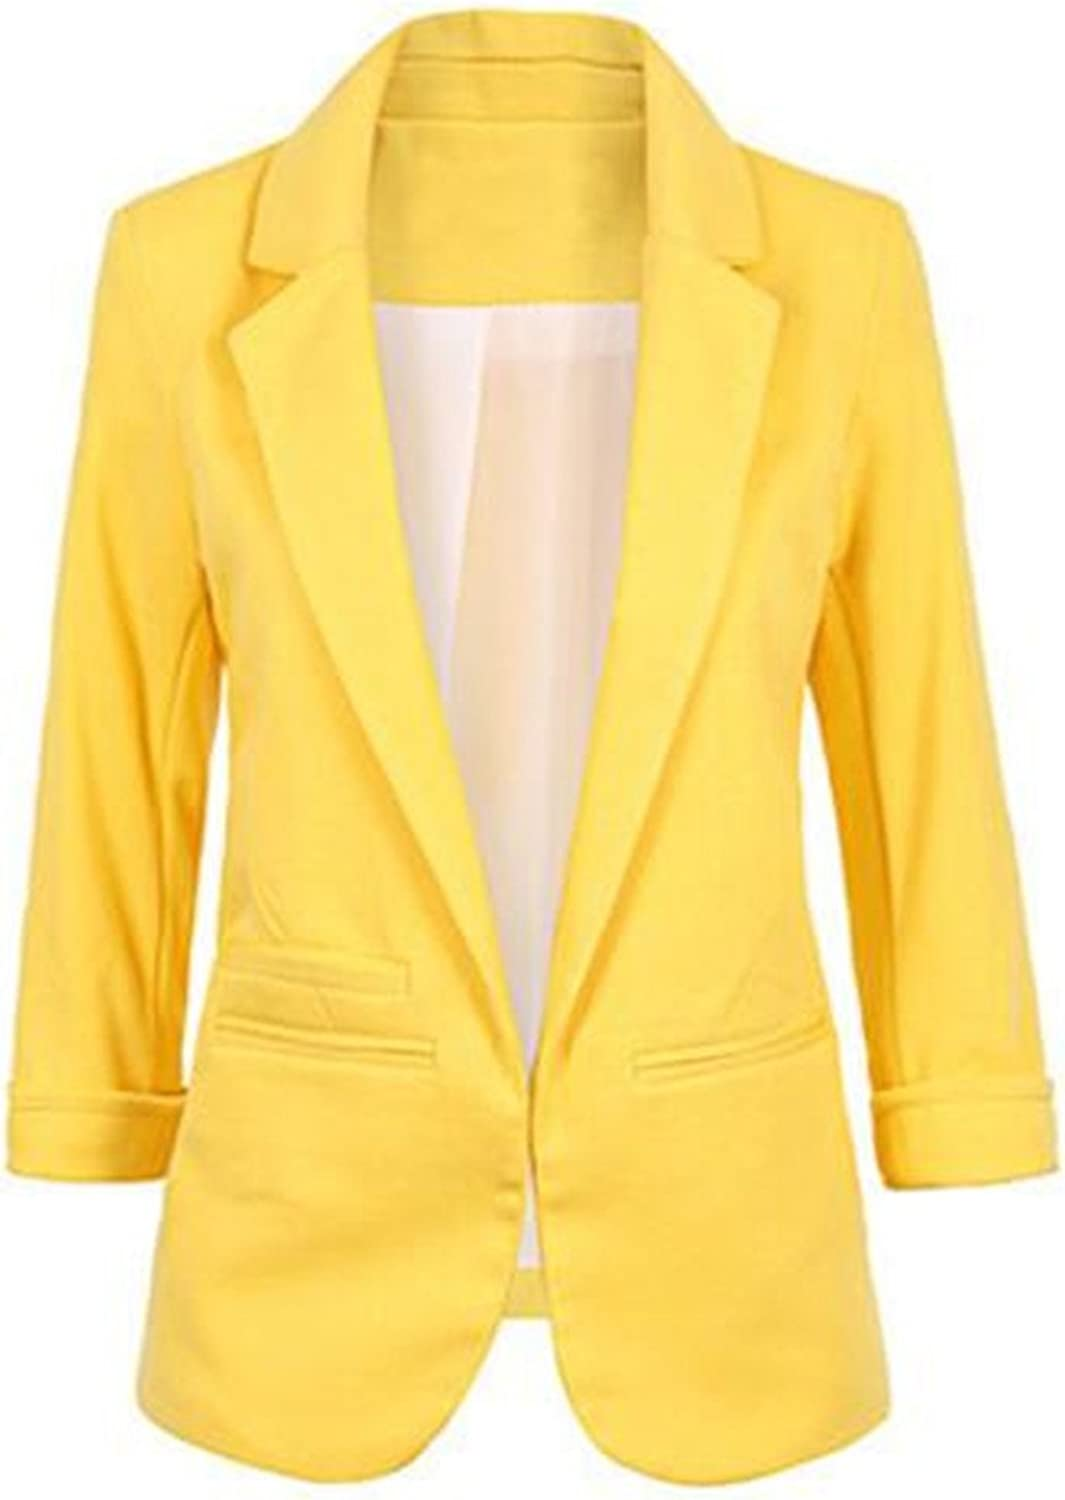 BCSY Women's Cotton Rolled Up Sleeve NoBuckle Blazer Jacket Suits